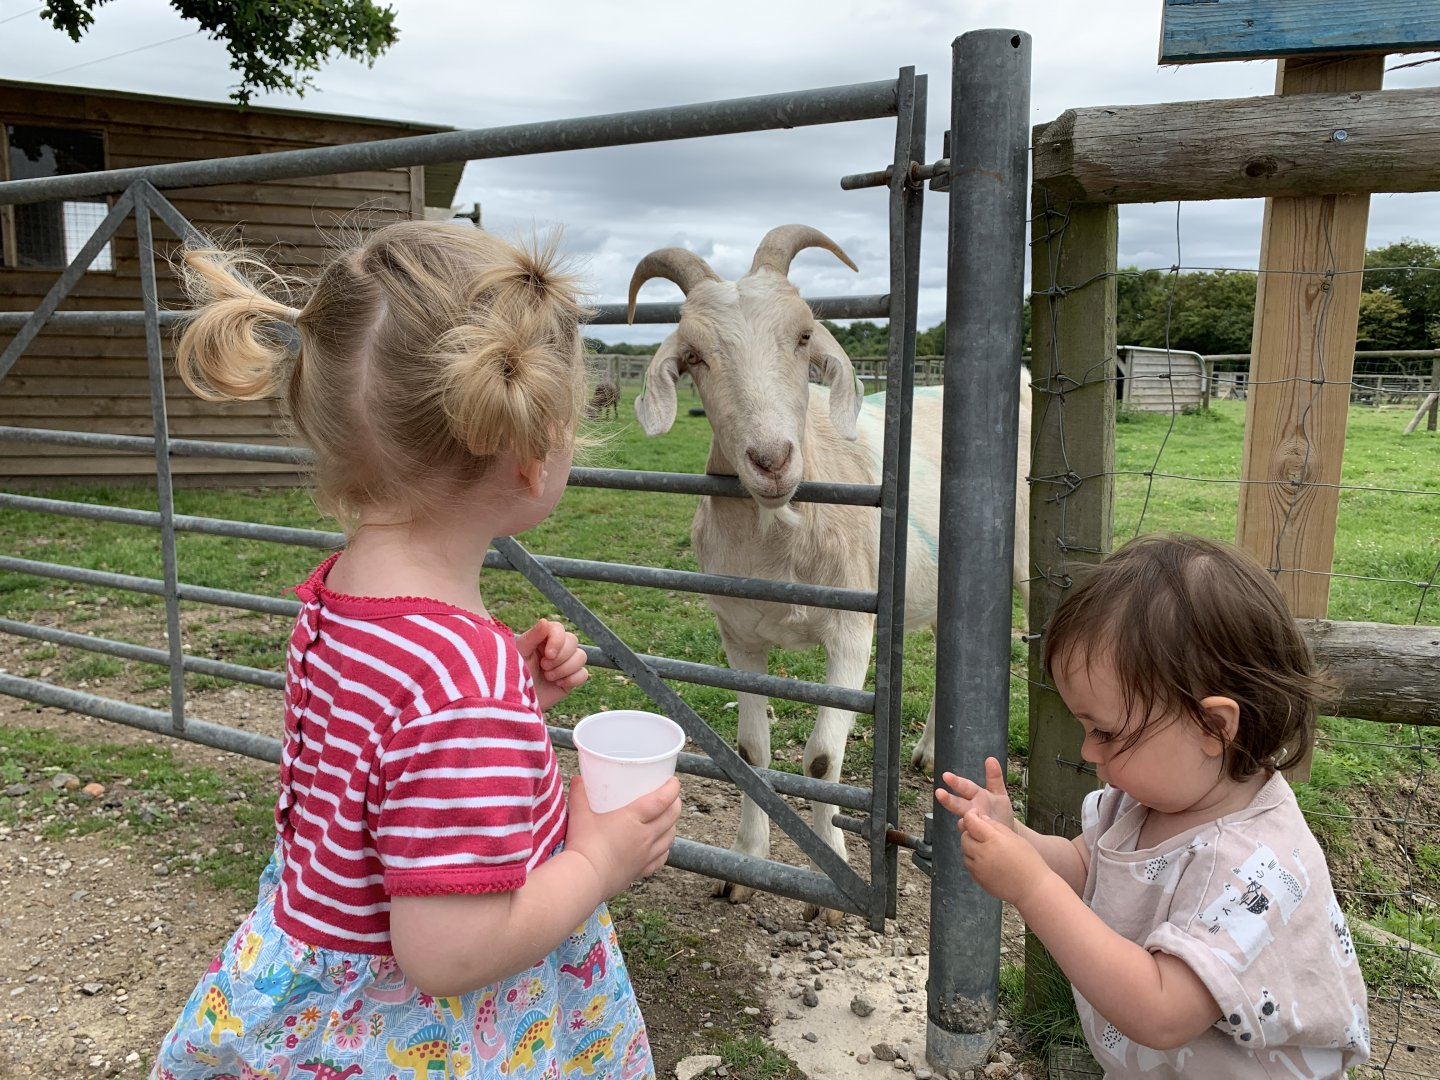 A white goat pokes his head through a gate to get to the animal feed that M and B are holding.